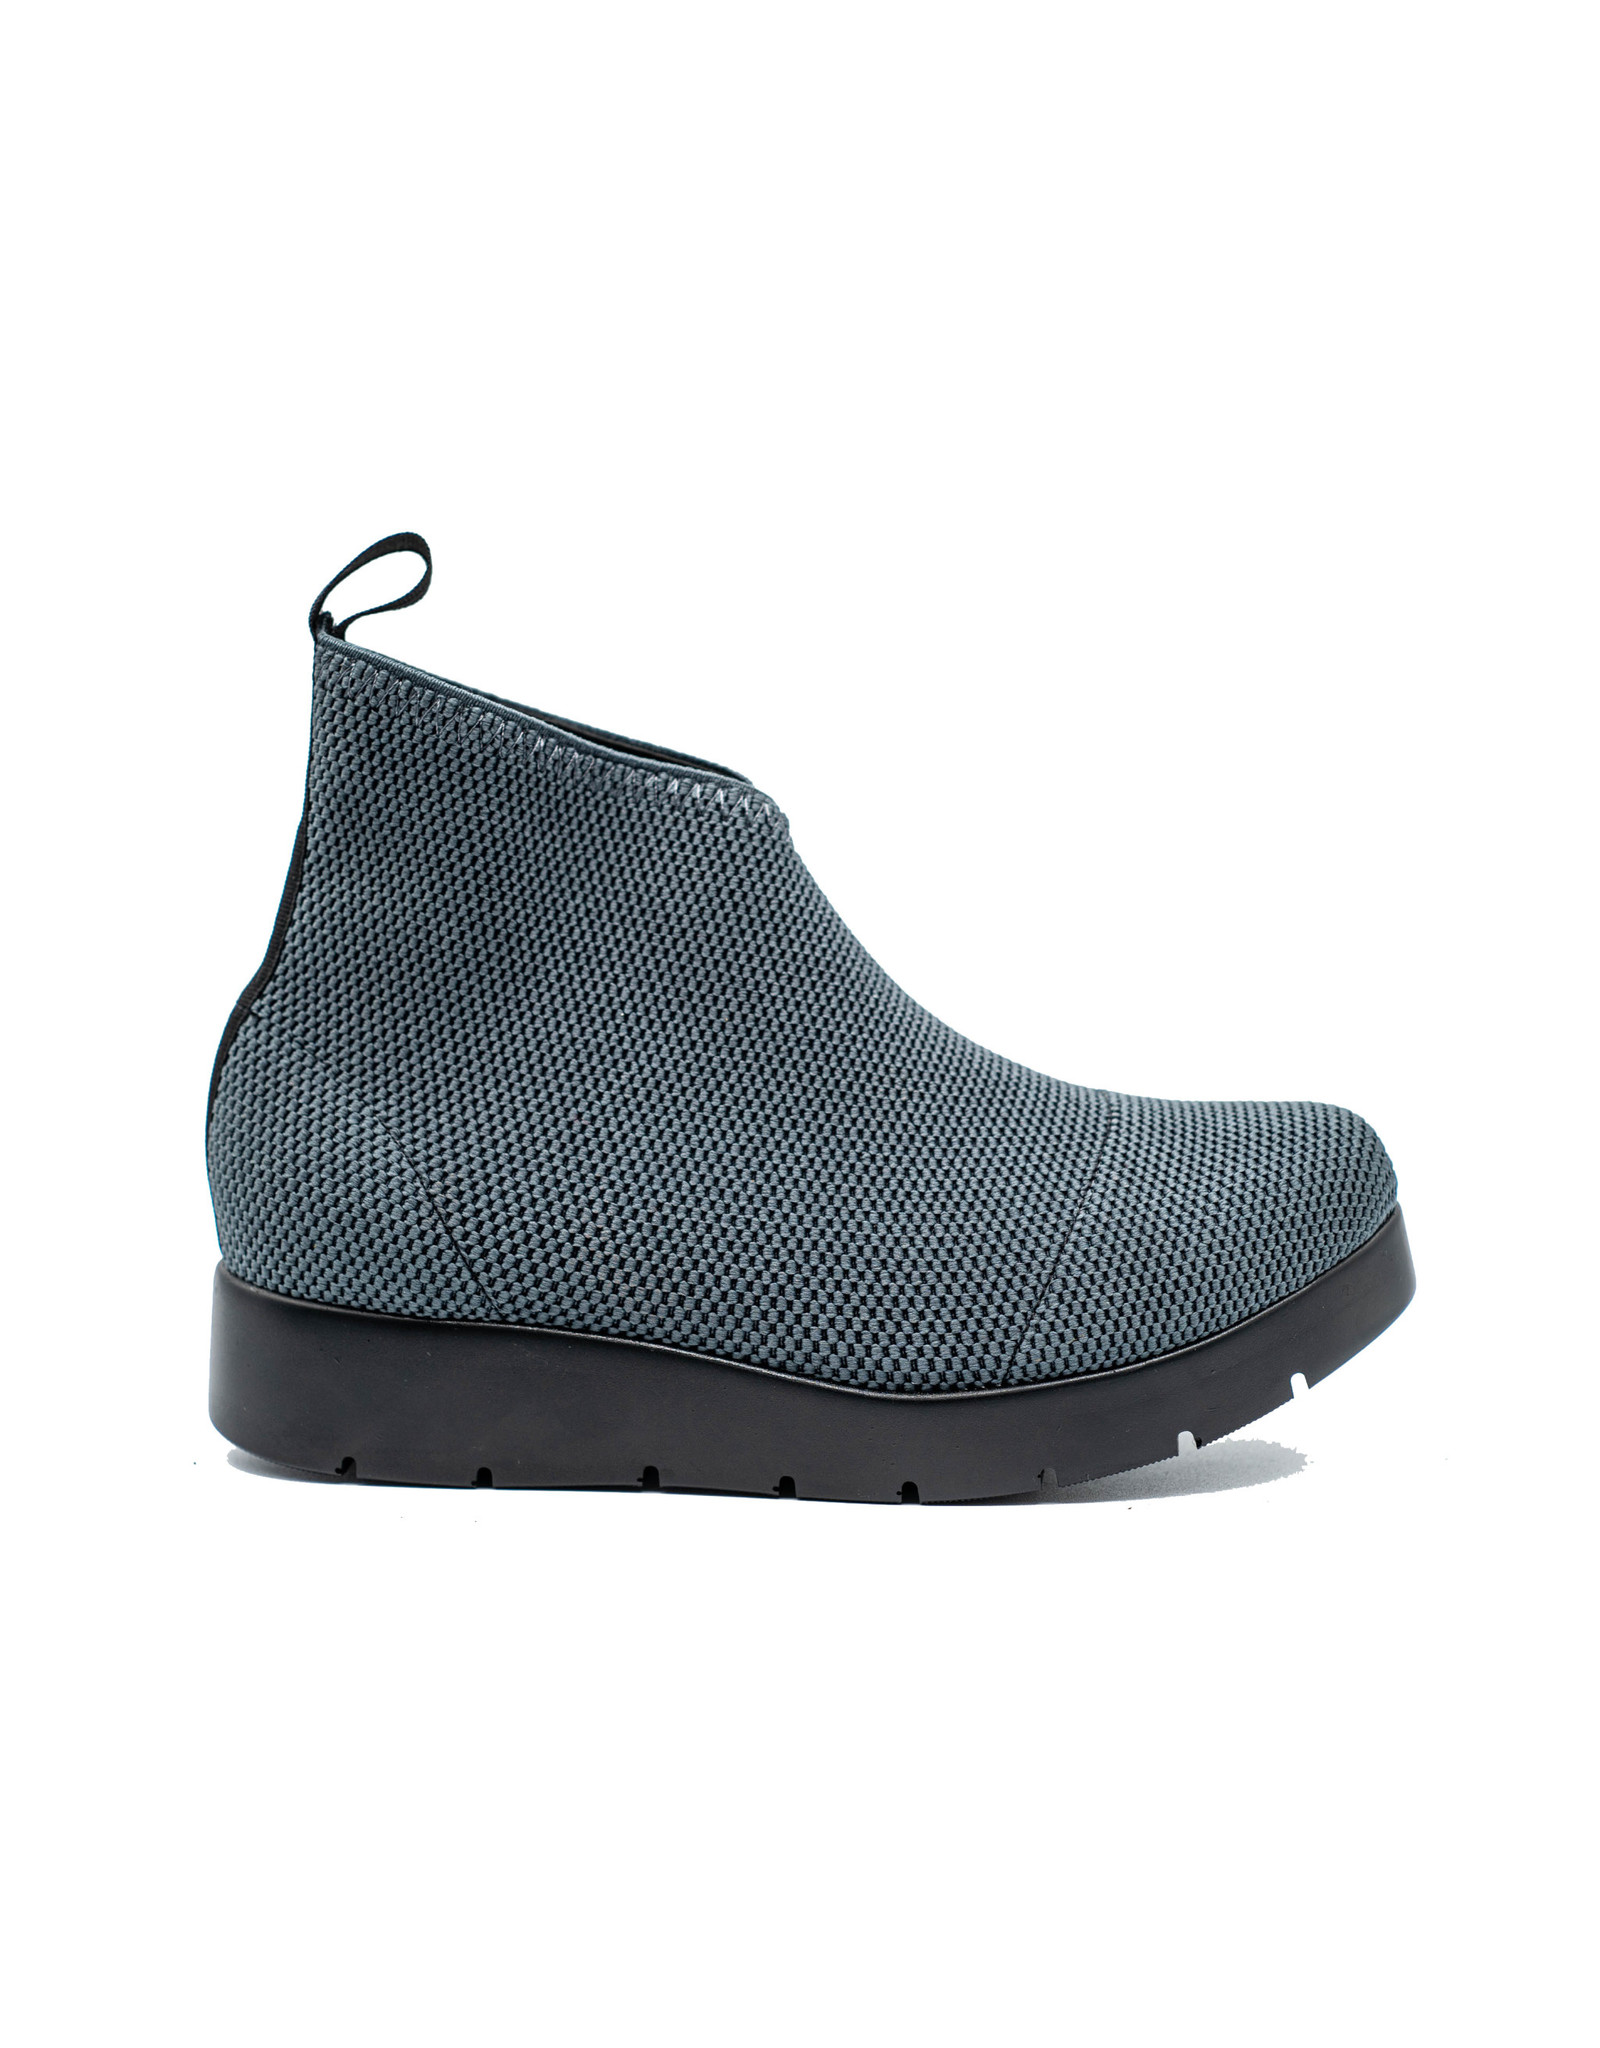 BARCELONA SHOE COMPANY BORN Alt Ankle Boot